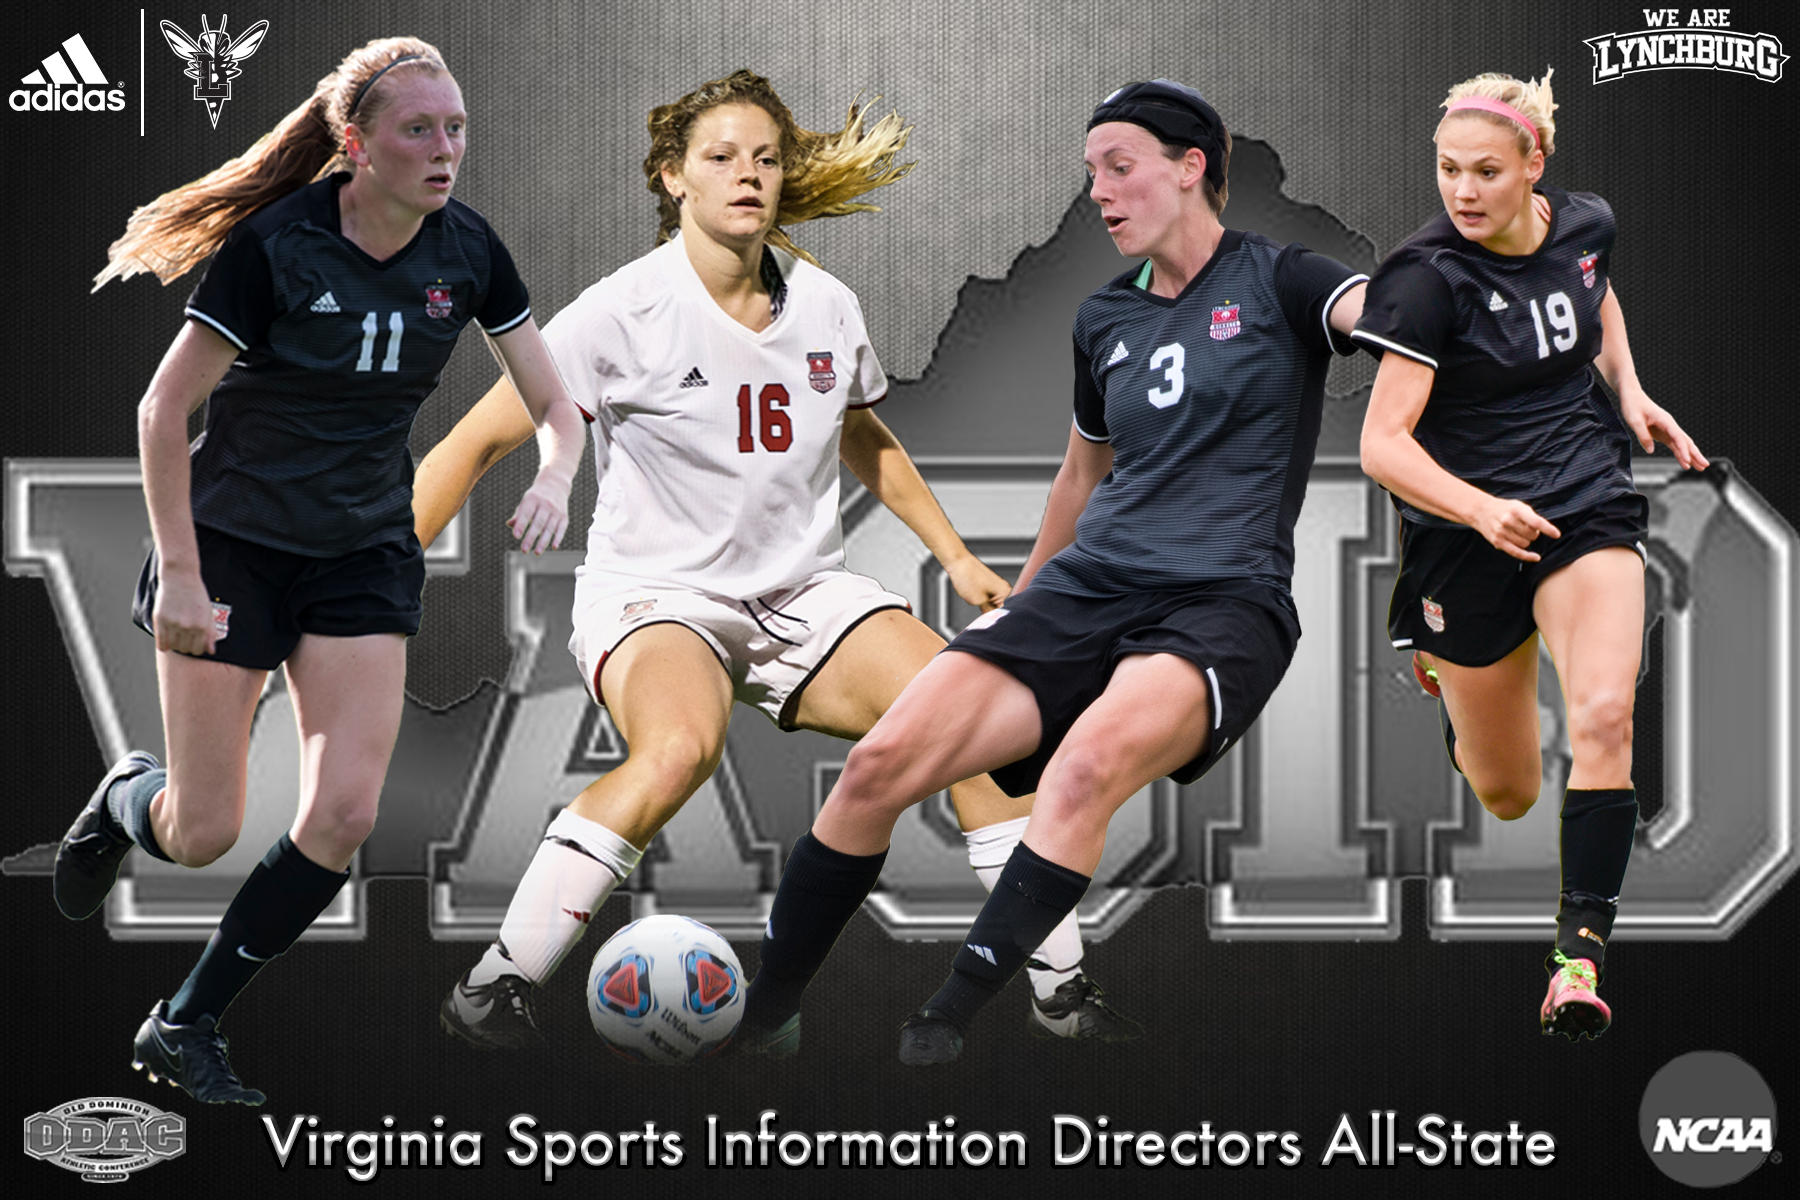 Caitlin Mertens, Kara Rombough, Emily Maxwell, Kennedy Jakubek shown playing soccer on graphic. Text: Virginia Sports Information Directors All-State